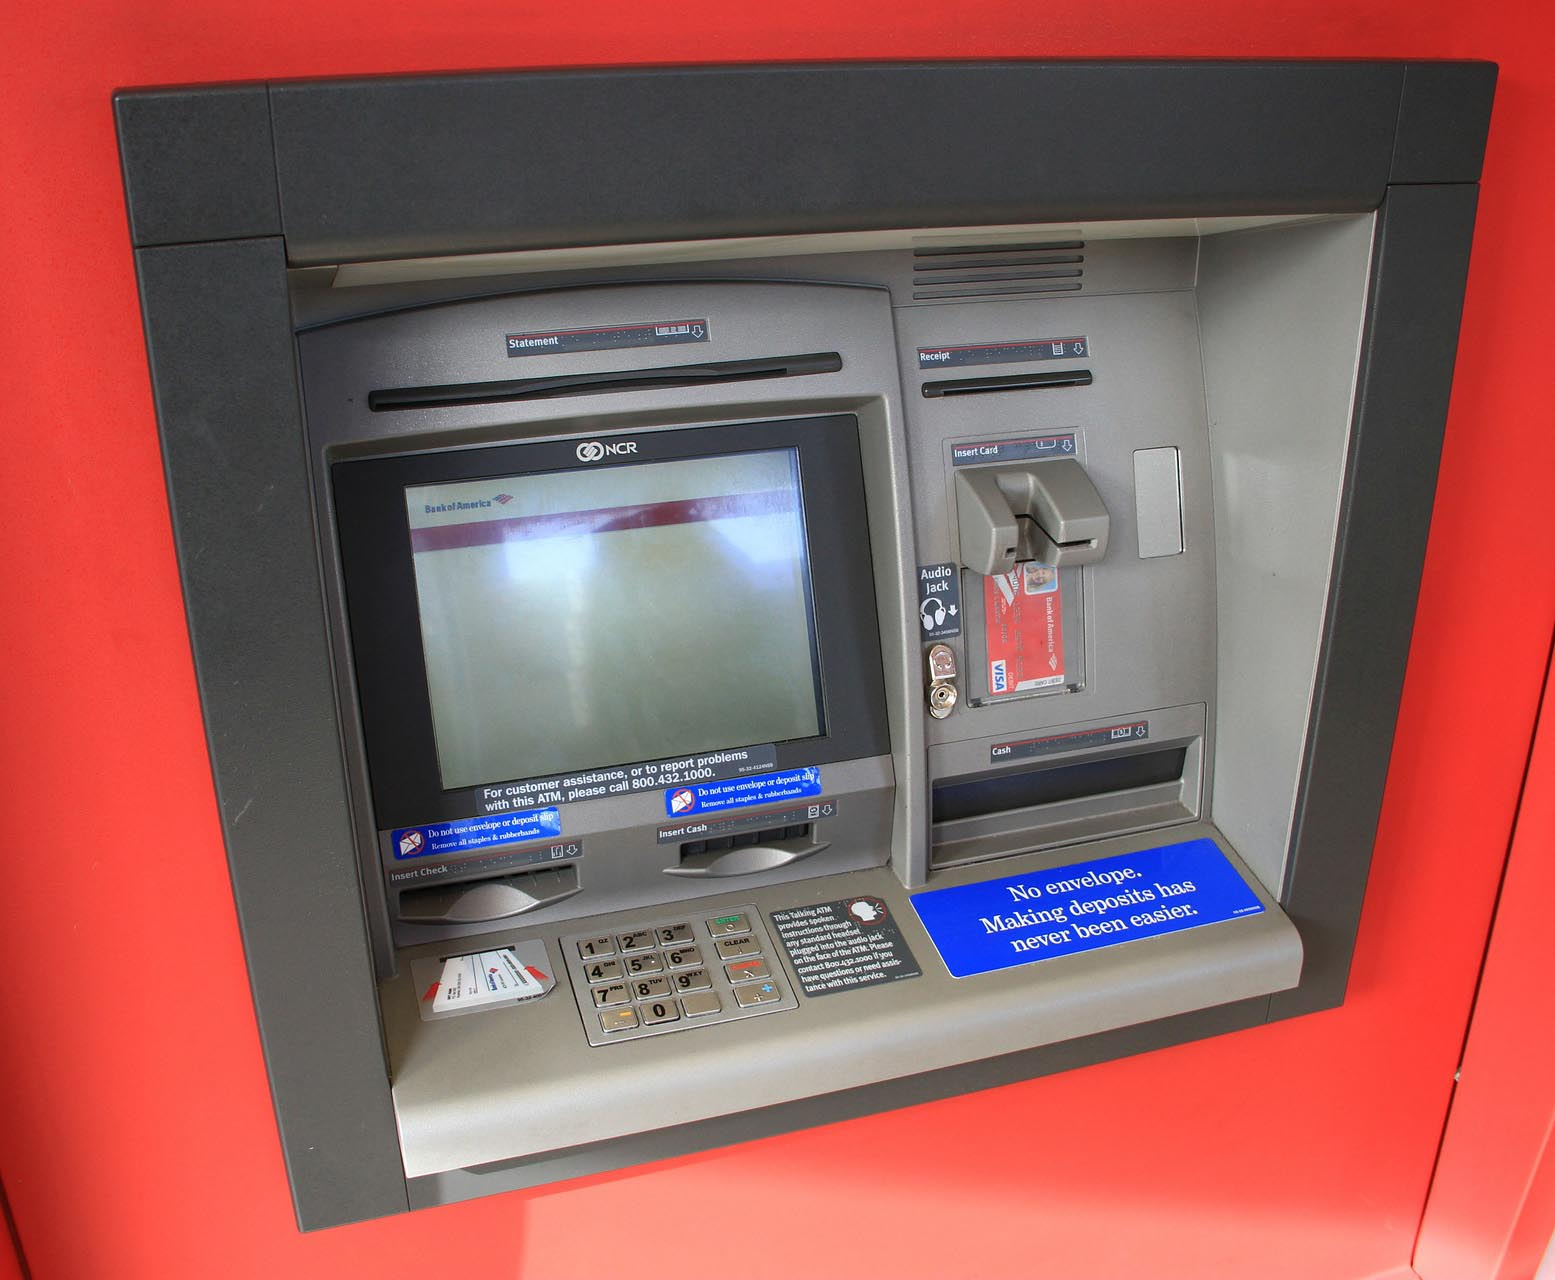 Atmia Releases New Atm Accessibility Guide